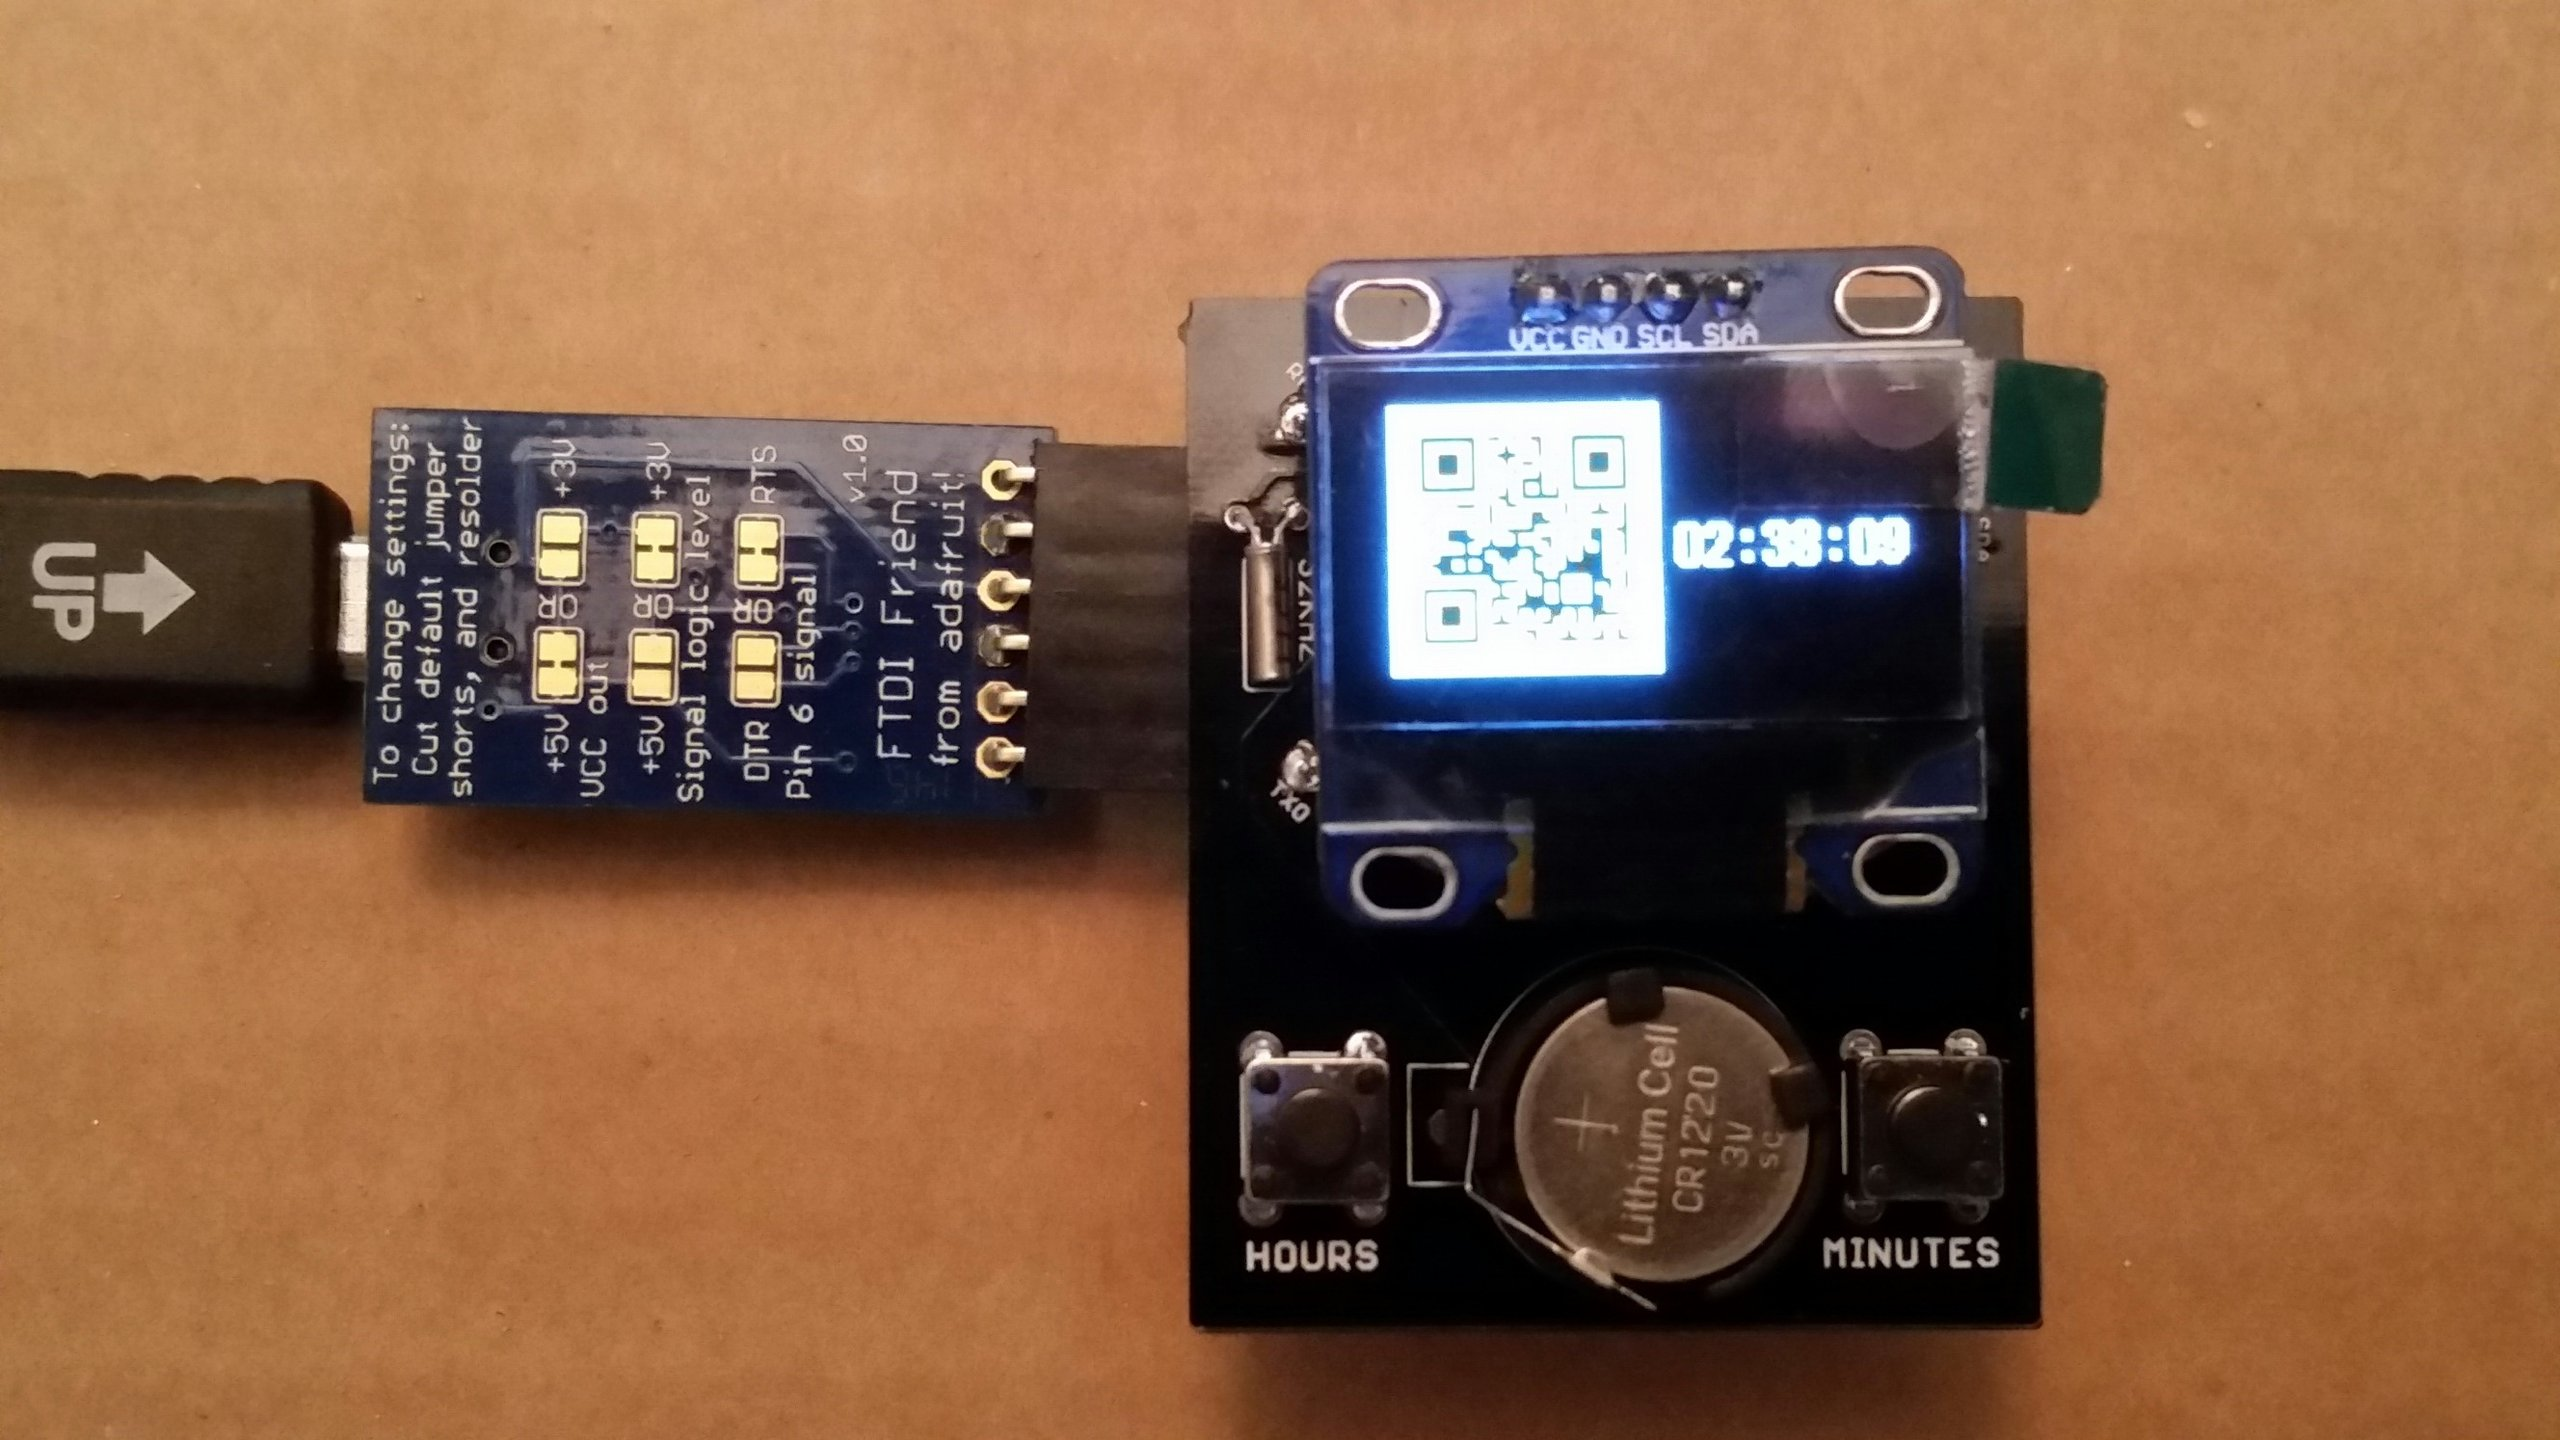 Oled clock shield kit for promini from florinc on tindie